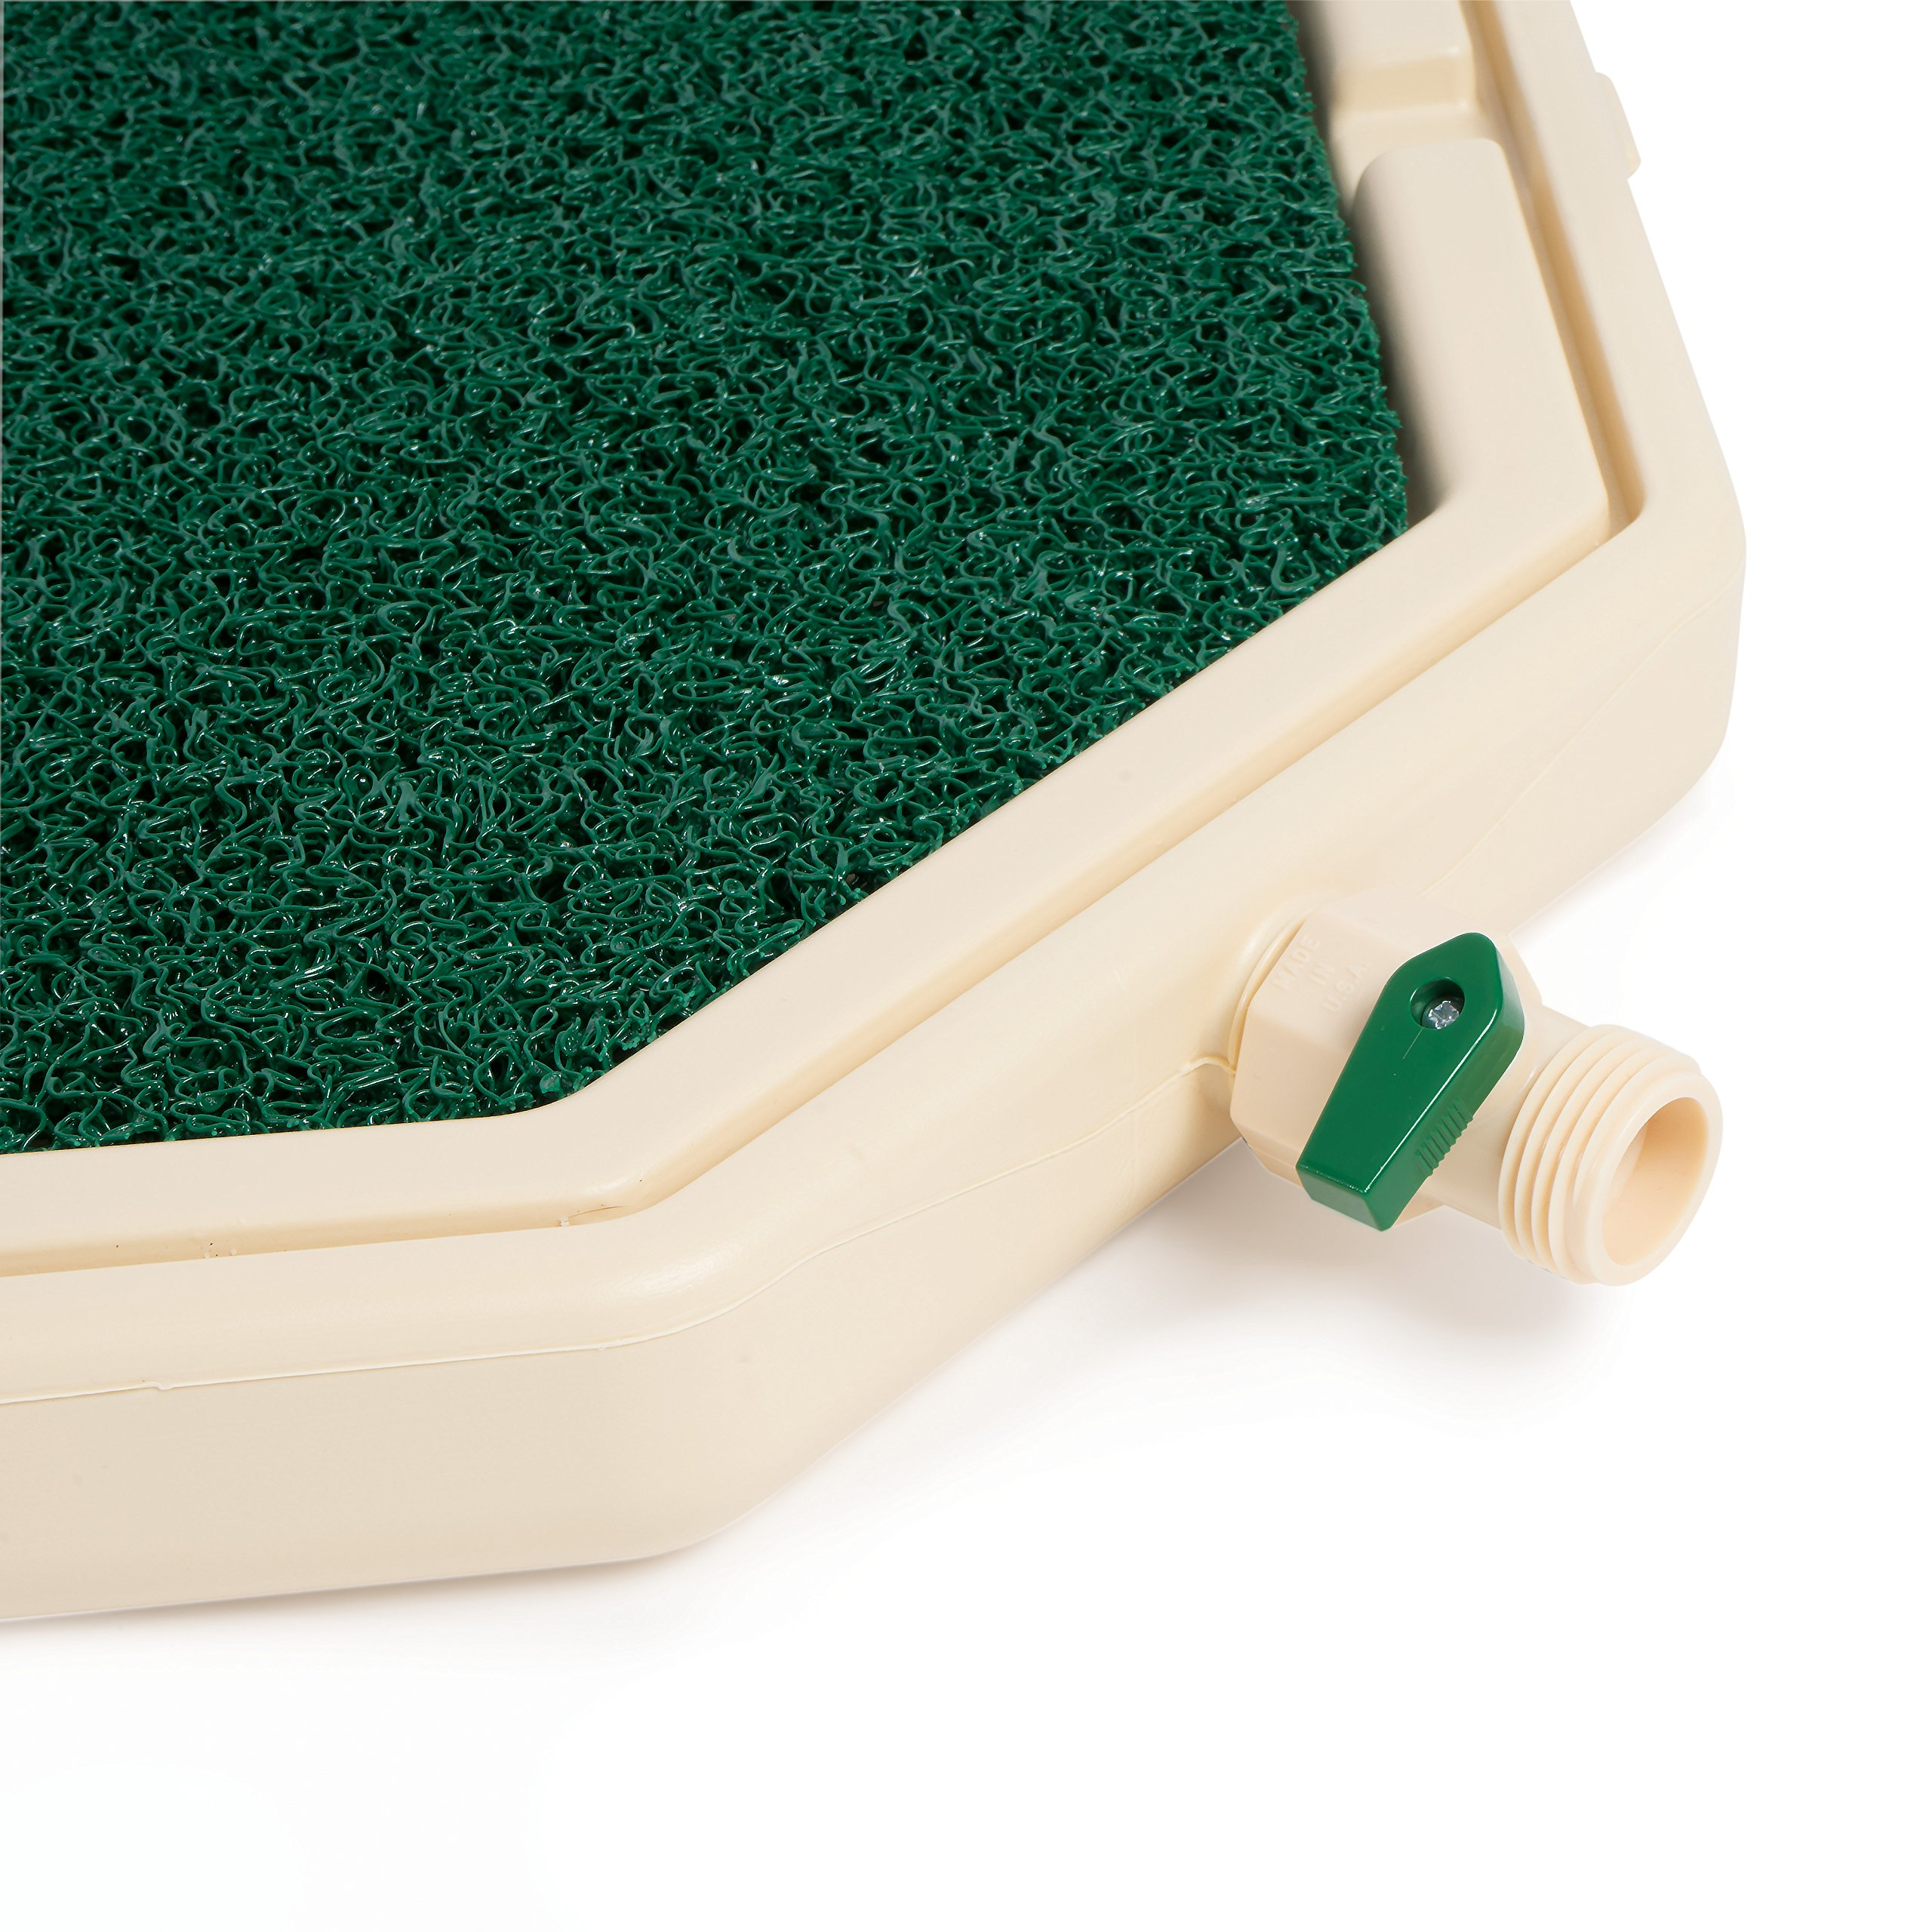 PetSafe Piddle Place Indoor/Outdoor Dog Potty, Alternative to Puppy Pads, Indoor Restroom for Dogs by PetSafe (Image #5)